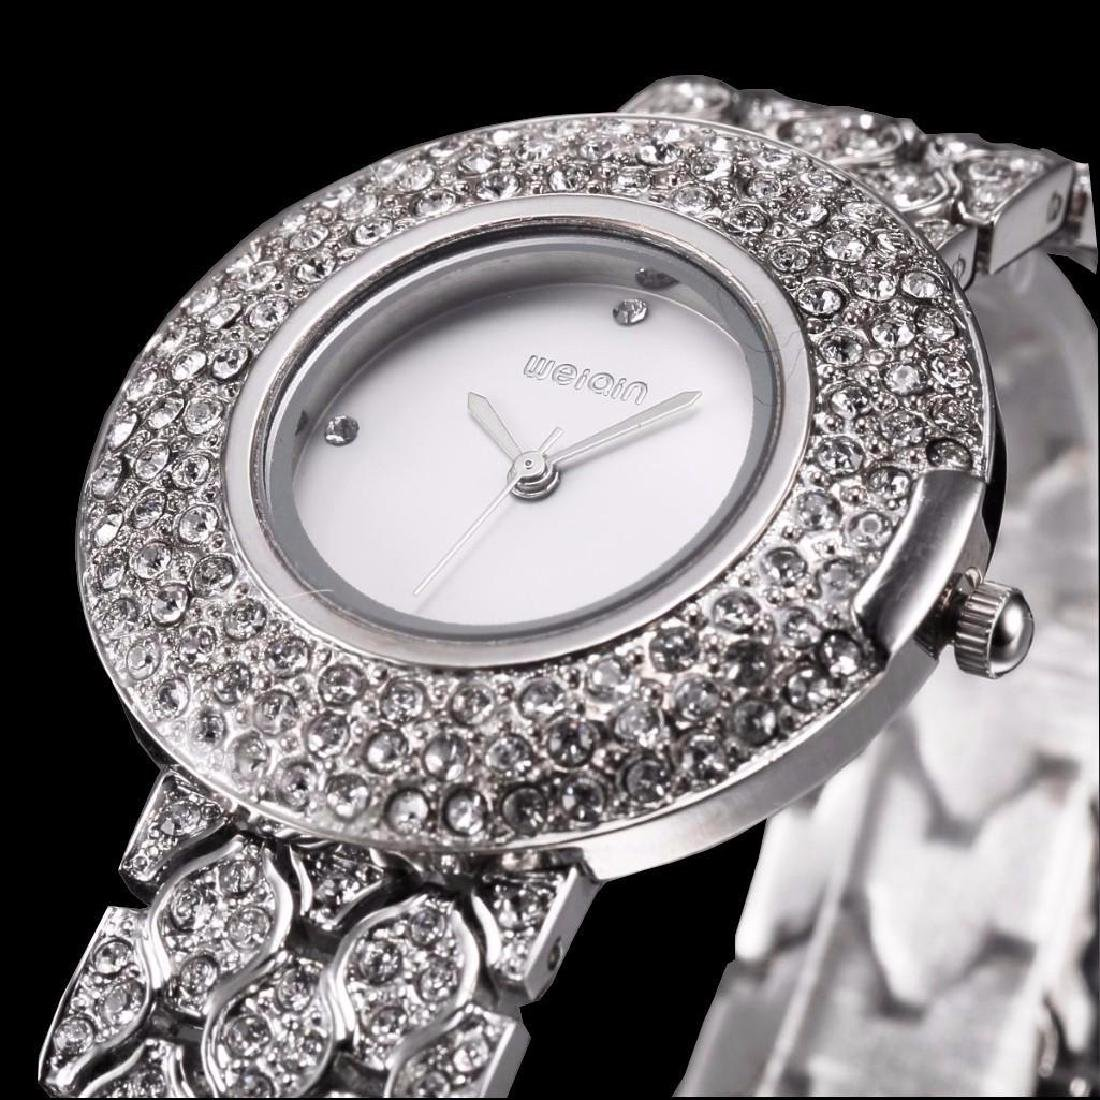 Women's Stainless Steel & Crystal Quartz Bracelet Wrist